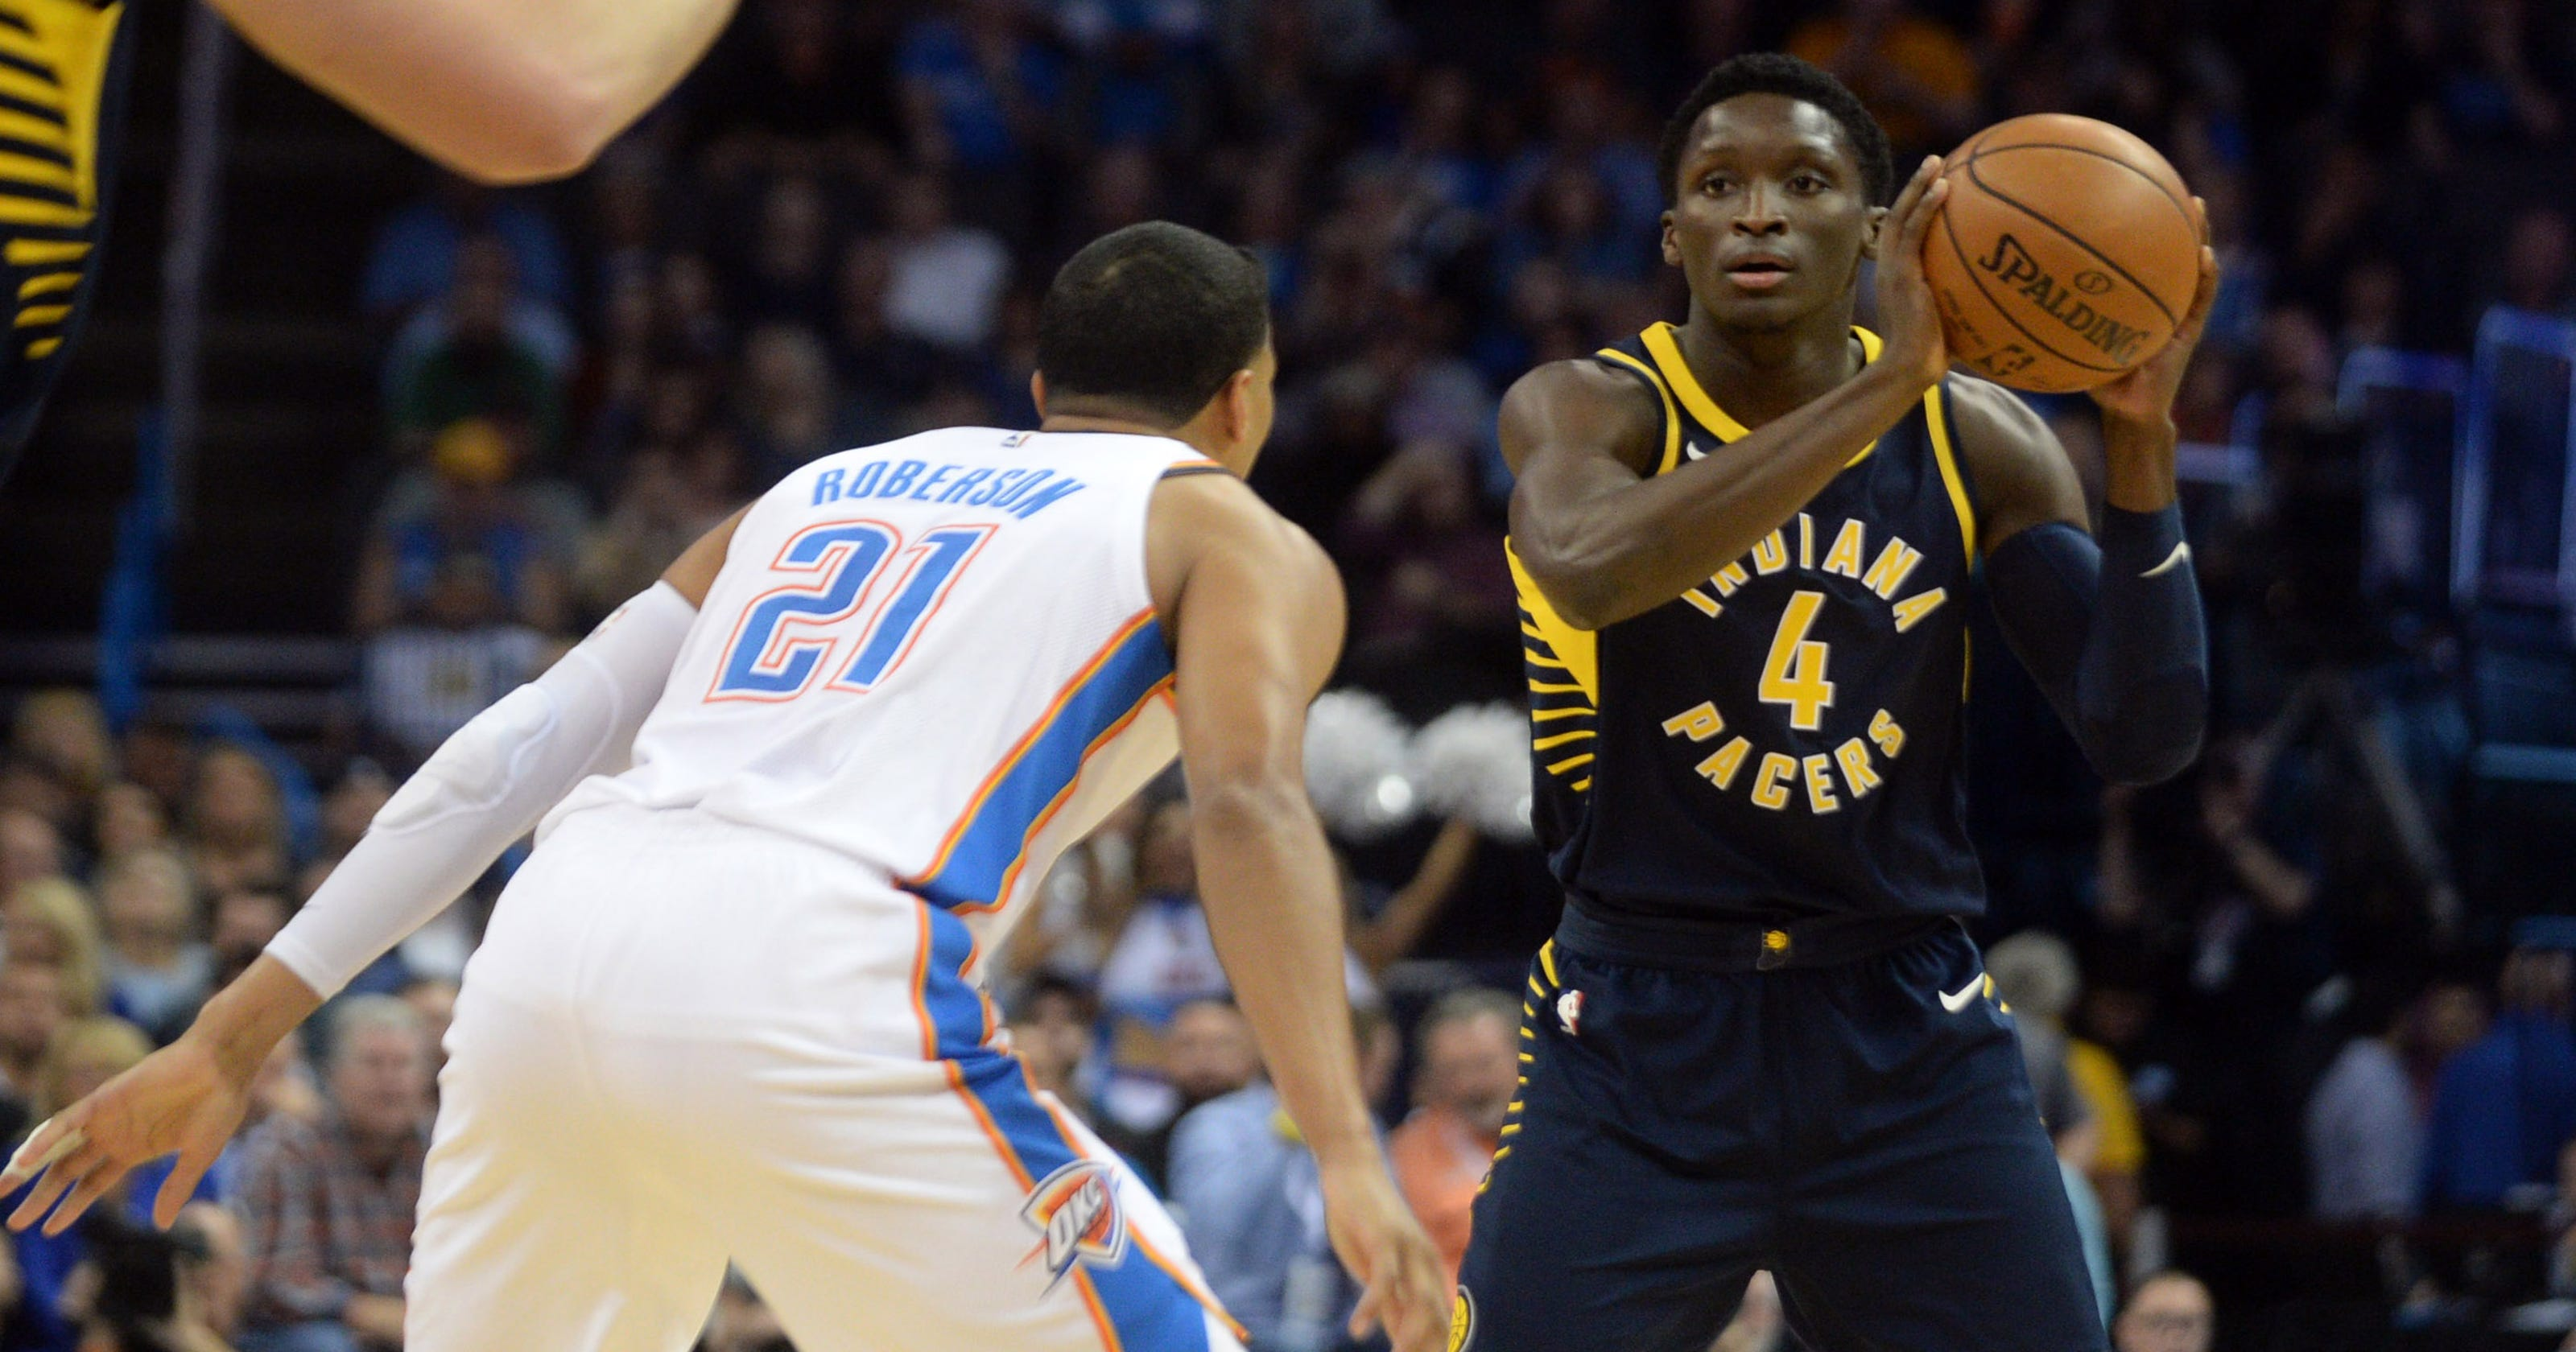 outlet store 3895a dc812 Pacers: Victor Oladipo makes statement against Thunder with ...